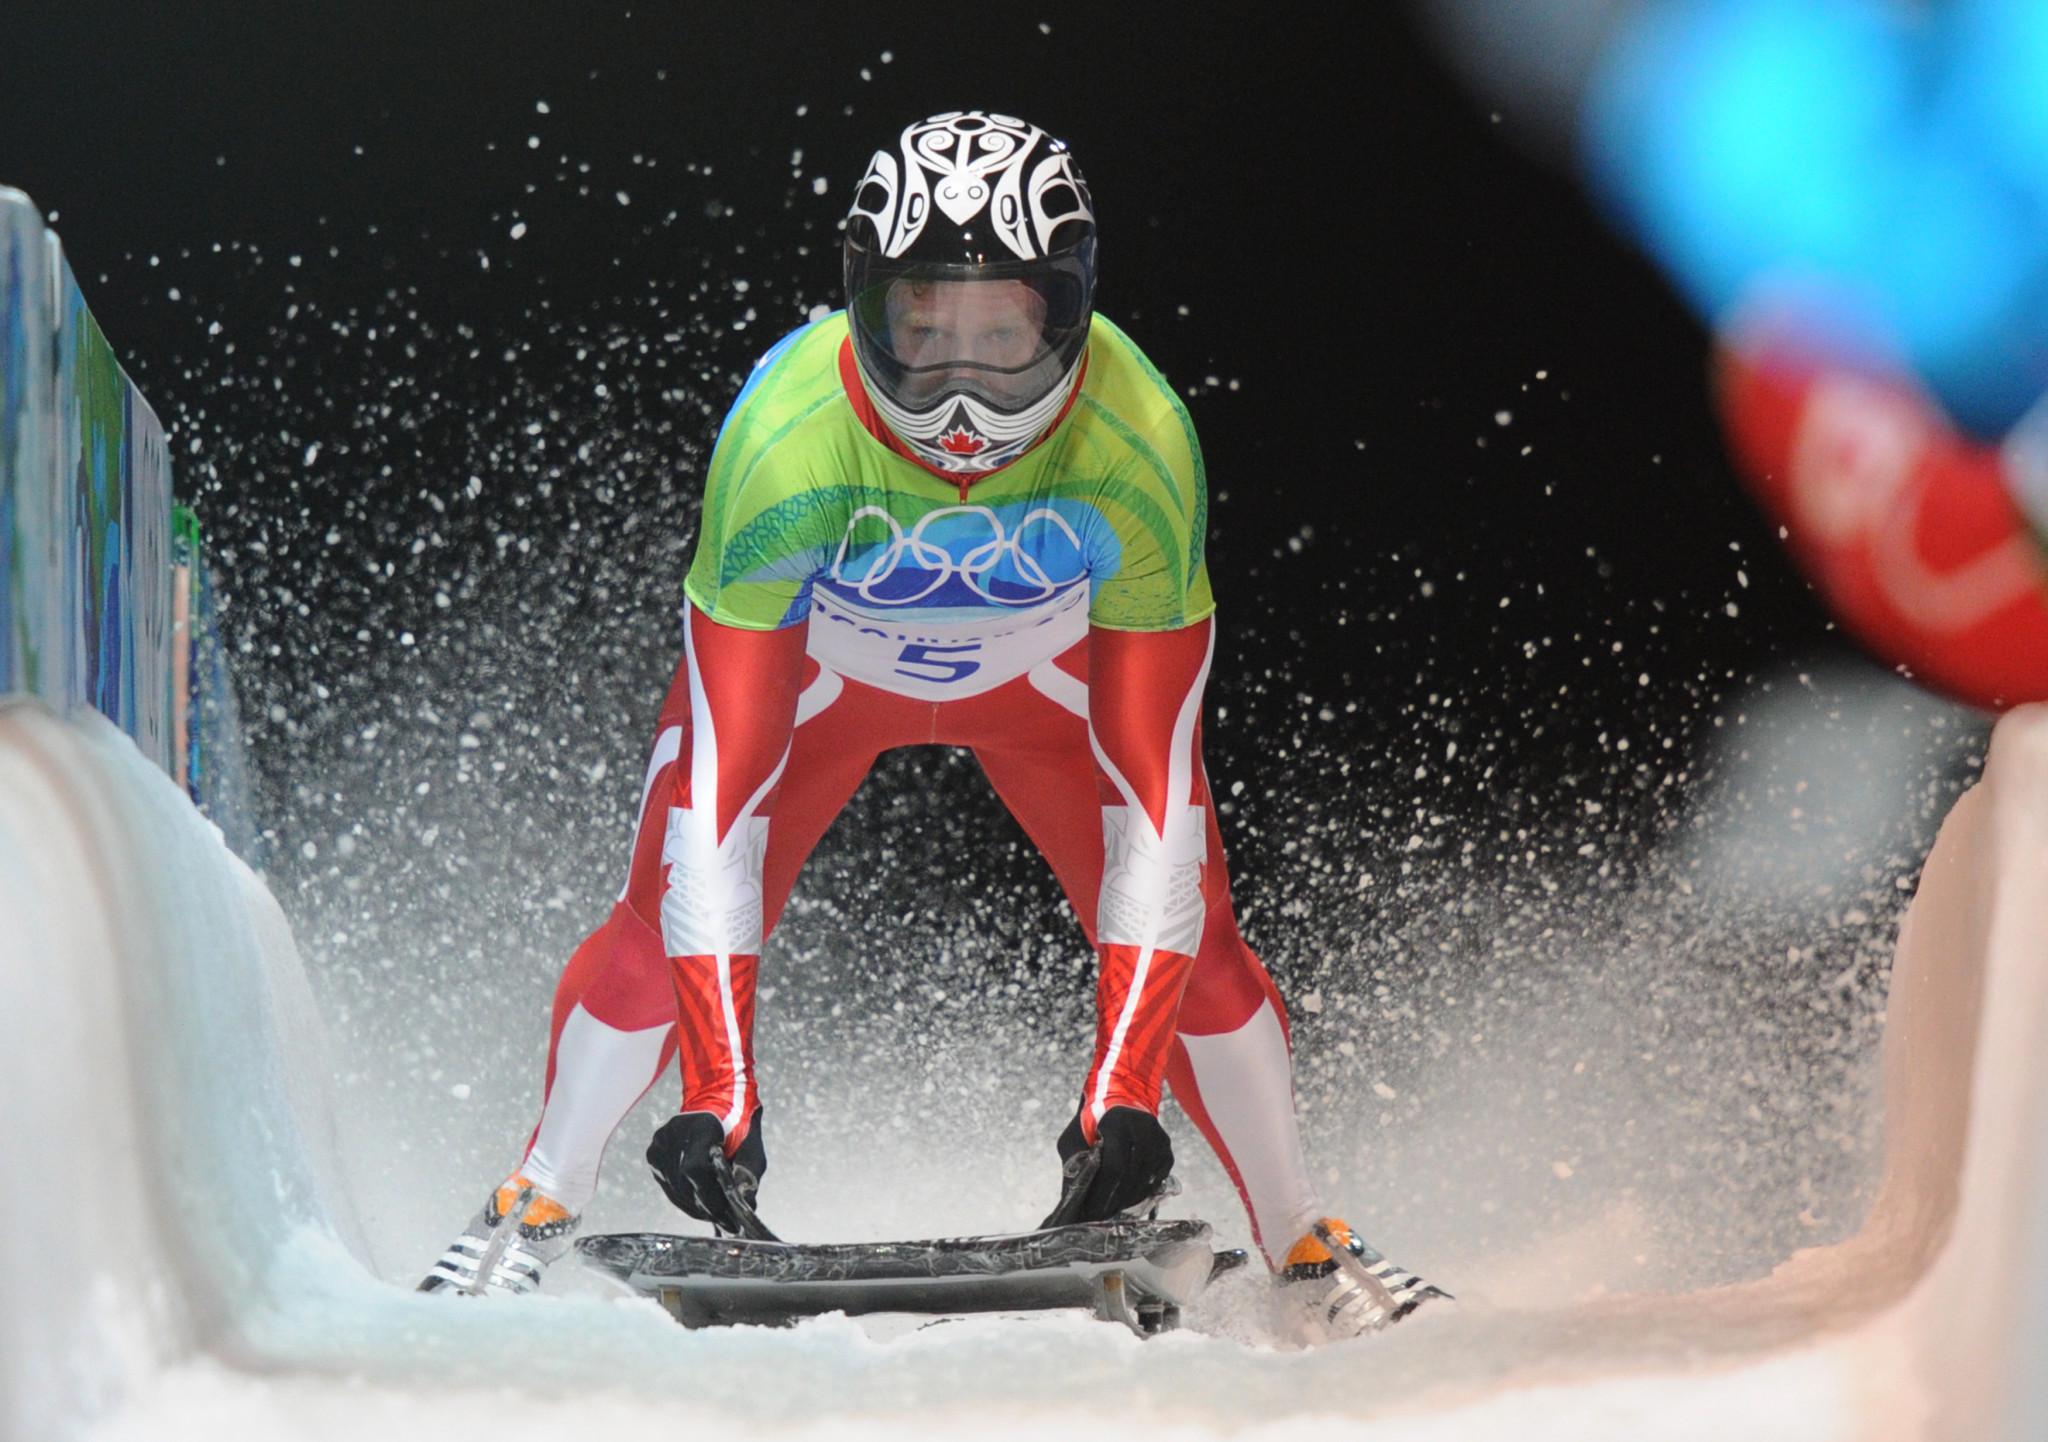 Whistler hosts Canada's only skeleton course, where Jon Montgomery won a home gold at Vancouver 2010 ©Getty Images